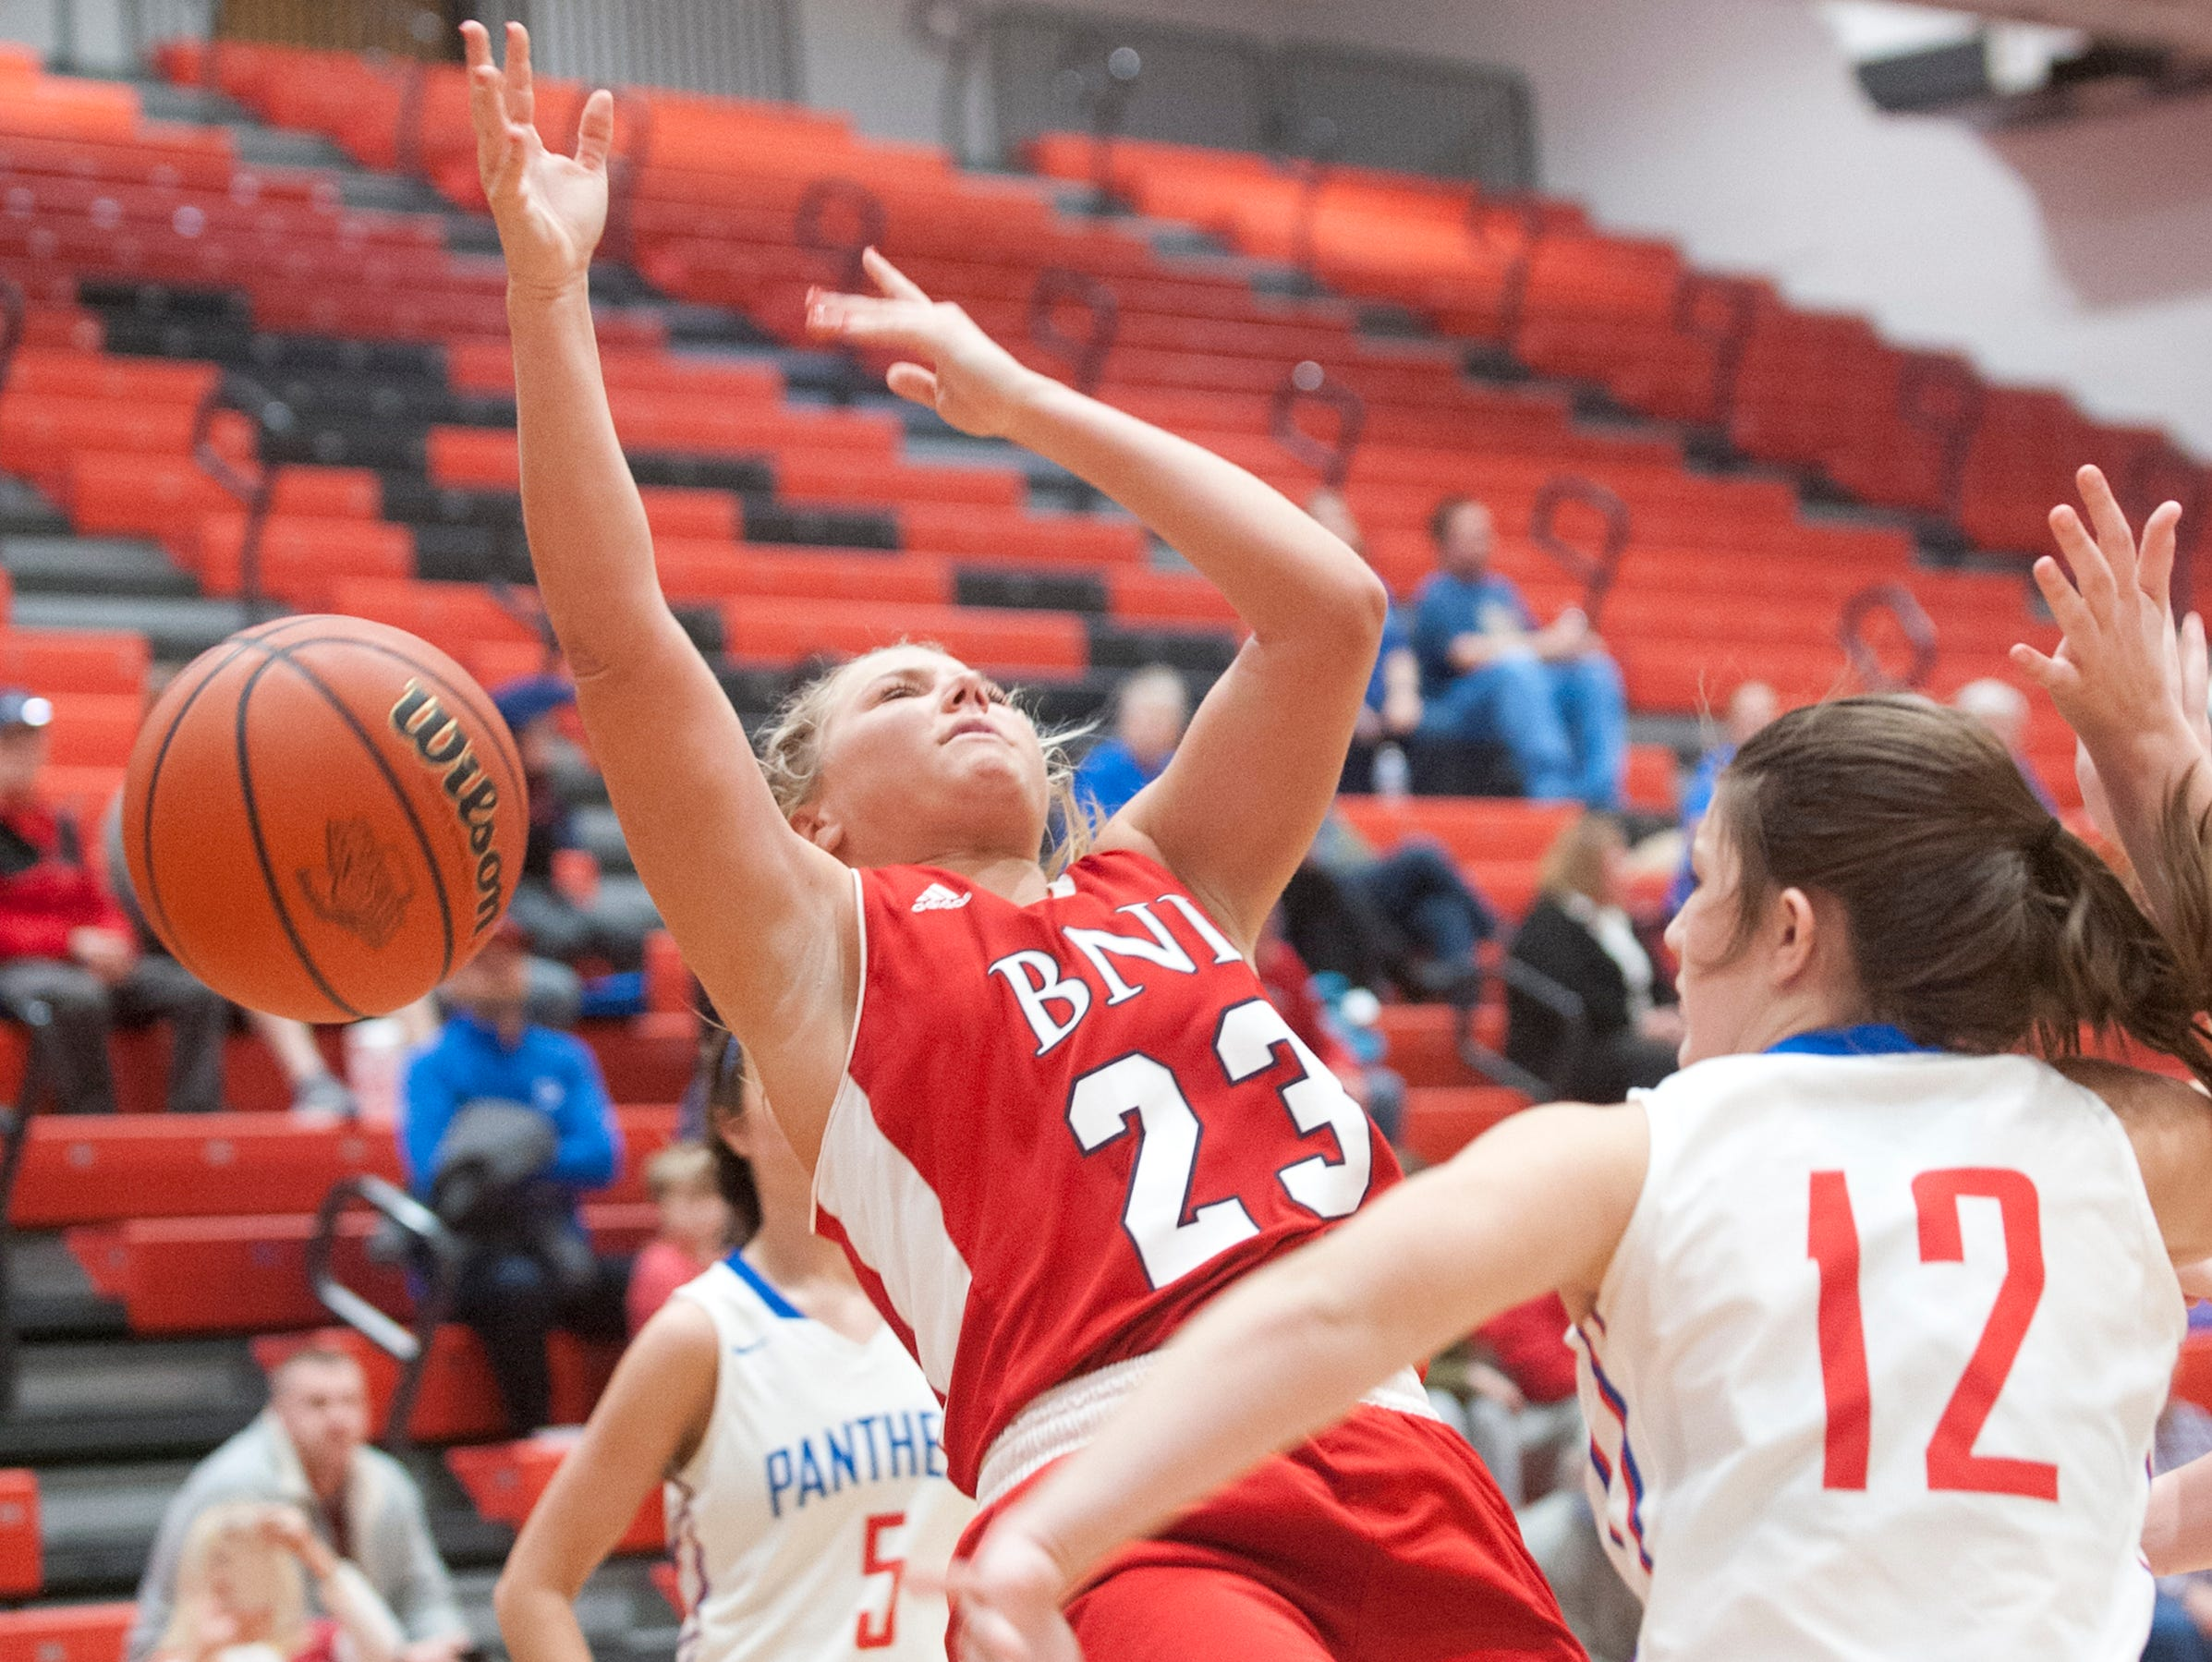 Bedford North Lawrence guard Jenna Louden collides with Jennings County guard Megan Schuler as Louden heads to the basket. Schuler was called for the blocking foul.04 February 2019